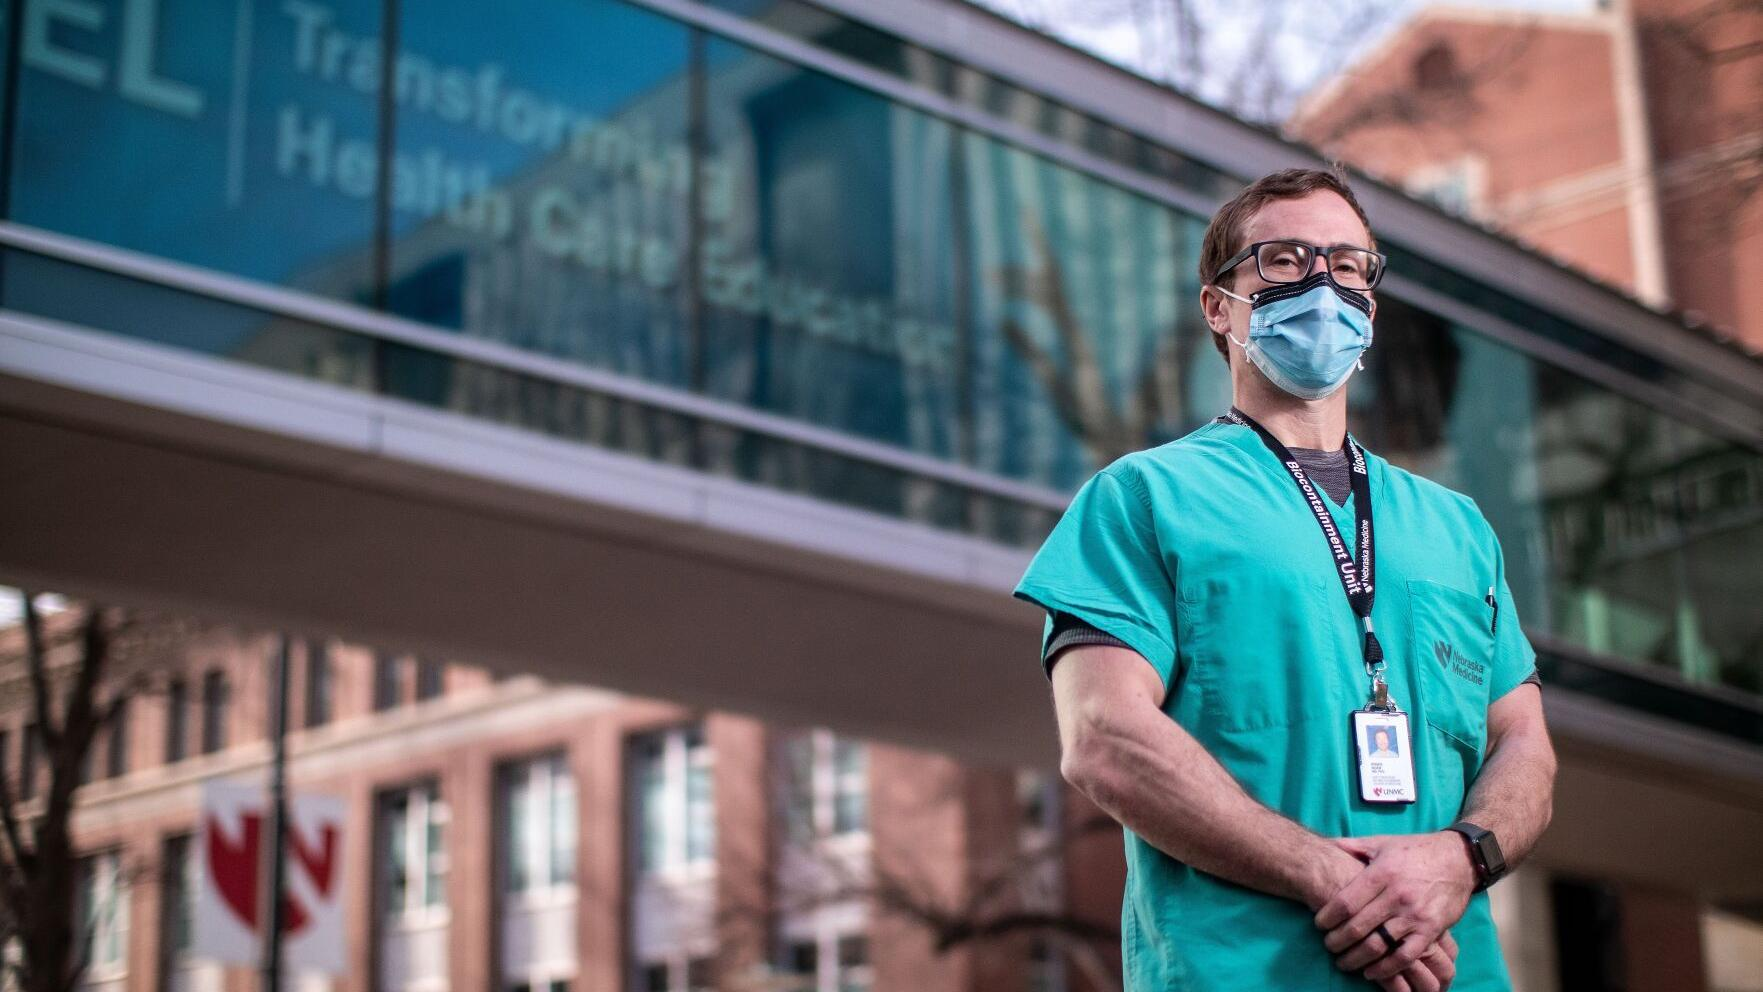 Midlanders of the Year: Nebraska's health care workers lead the fight against COVID